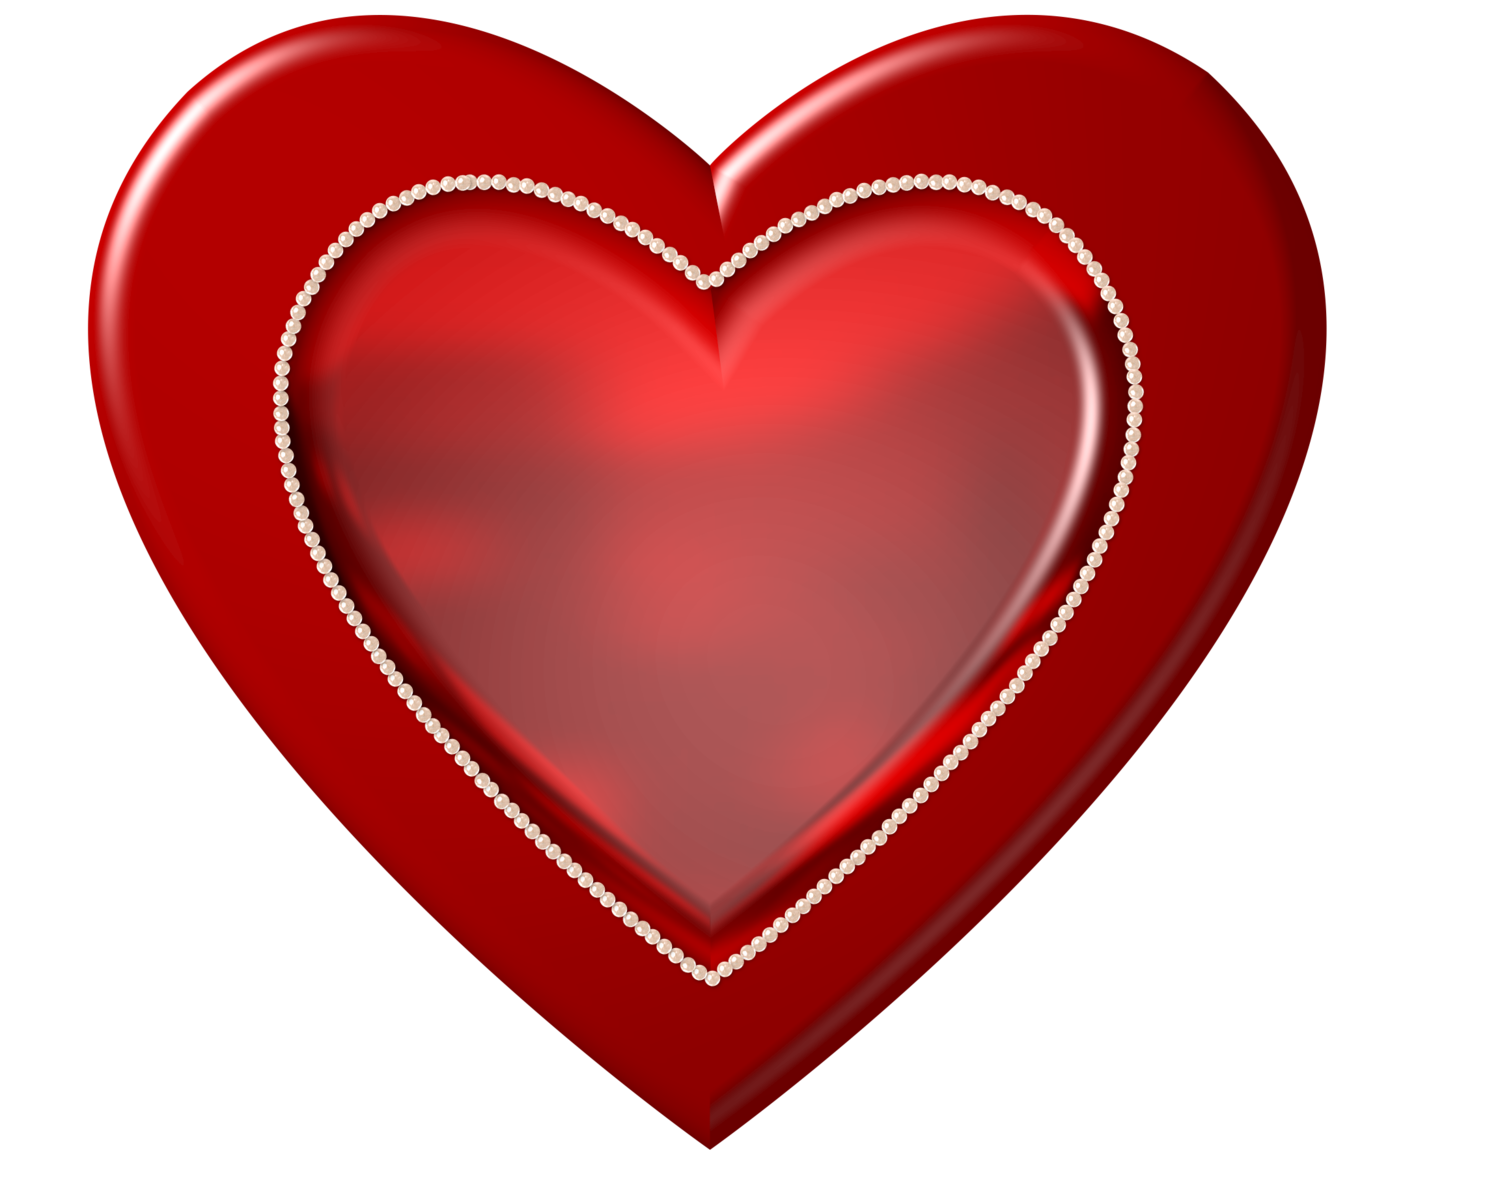 Red heart outline clipart graphic royalty free library Free red heart Stock Photo - FreeImages.com graphic royalty free library